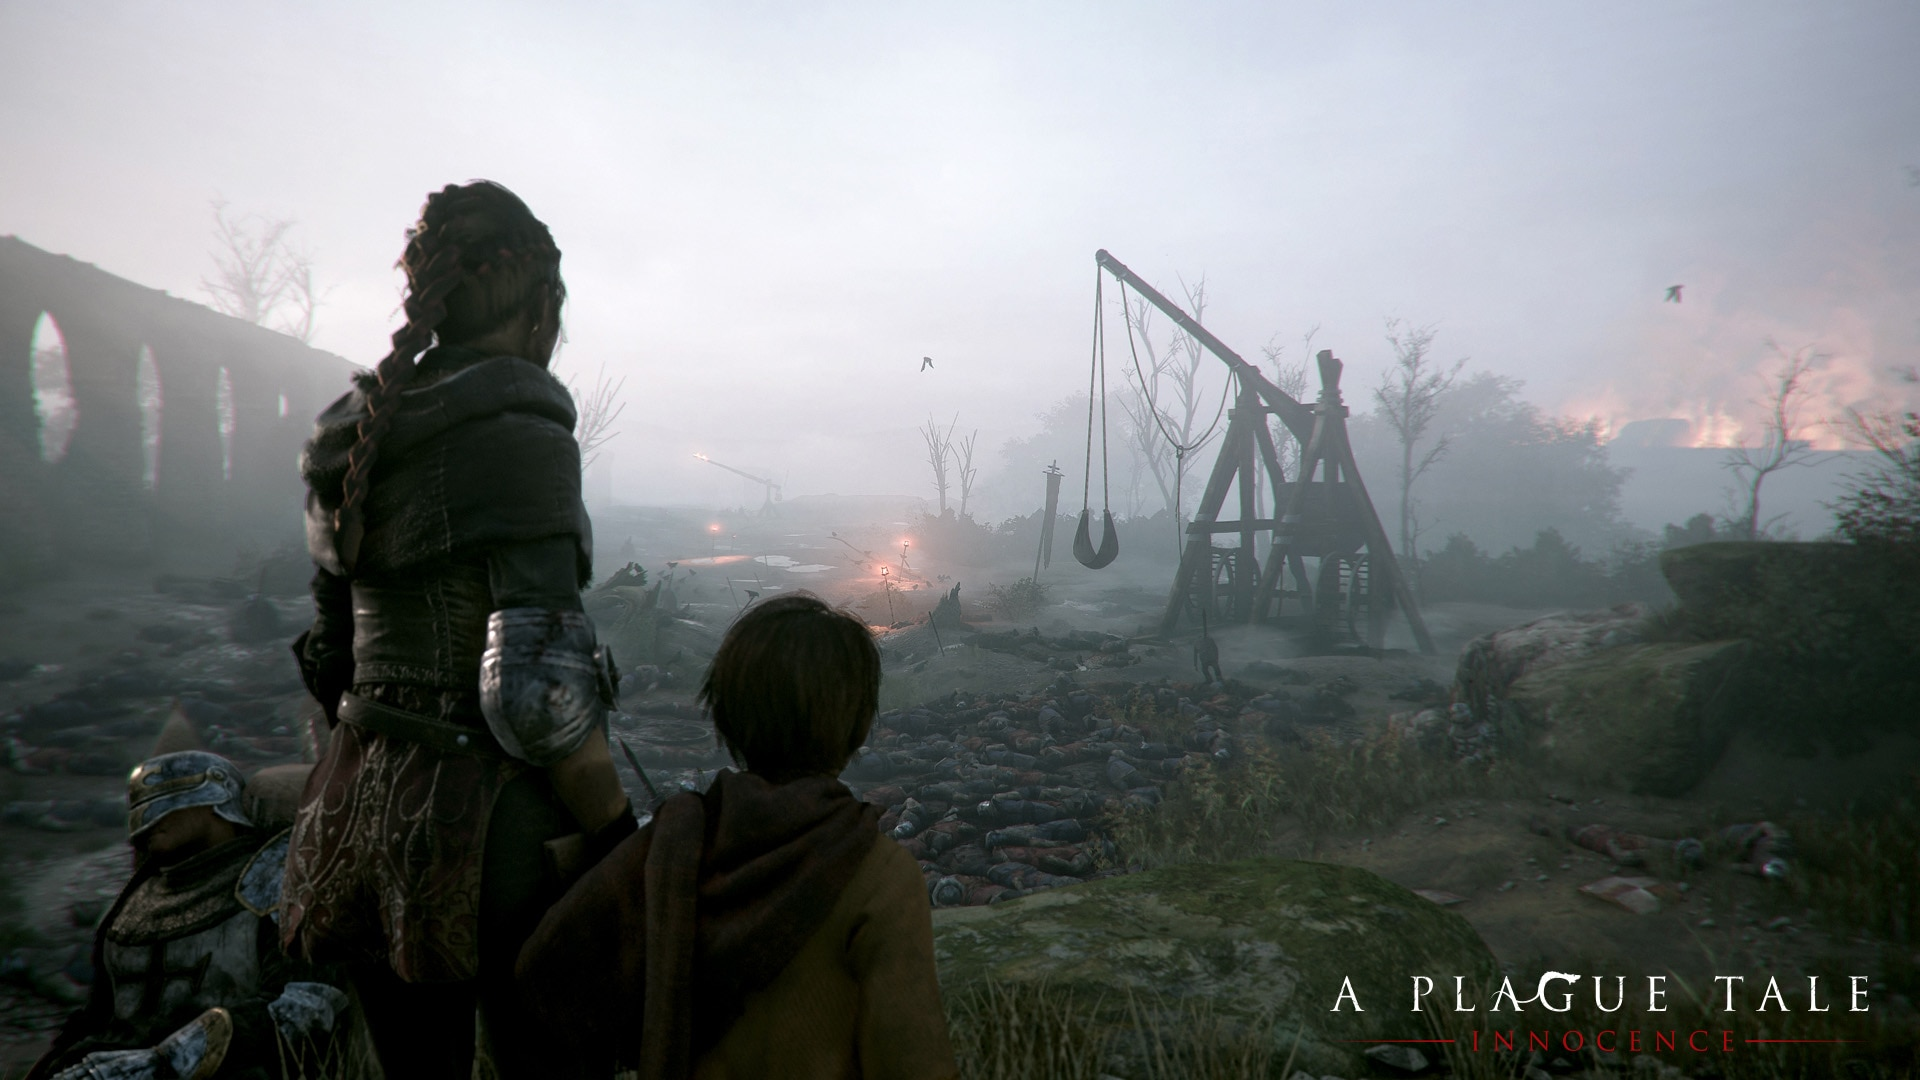 A Plague Tale Innocence 08 - E3 2018: Getting Down With The Sickness In A PLAGUE TALE: INNOCENCE